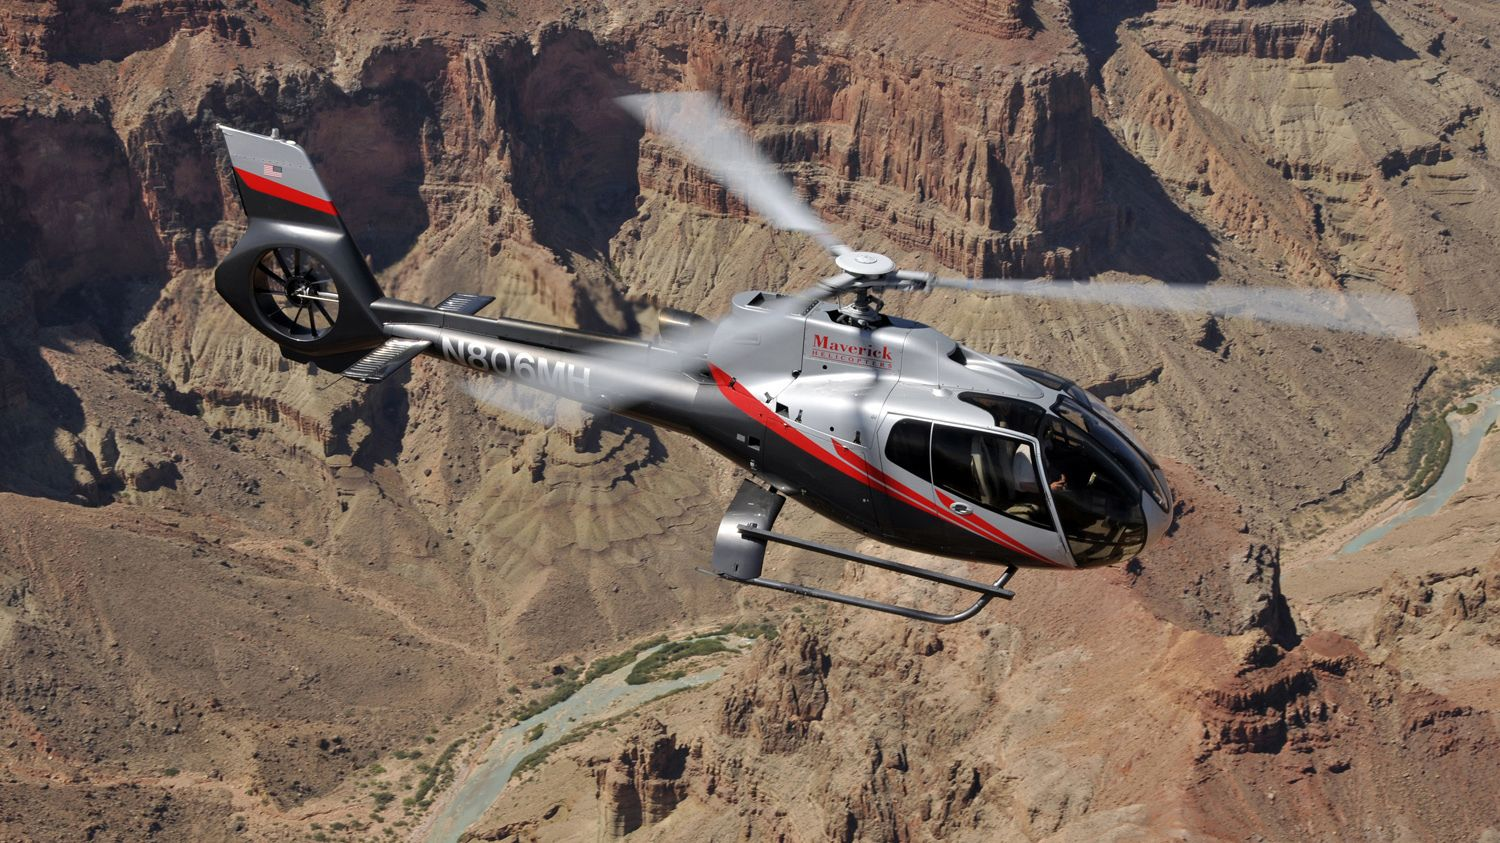 Helikoptertour over de Grand Canyon met landing